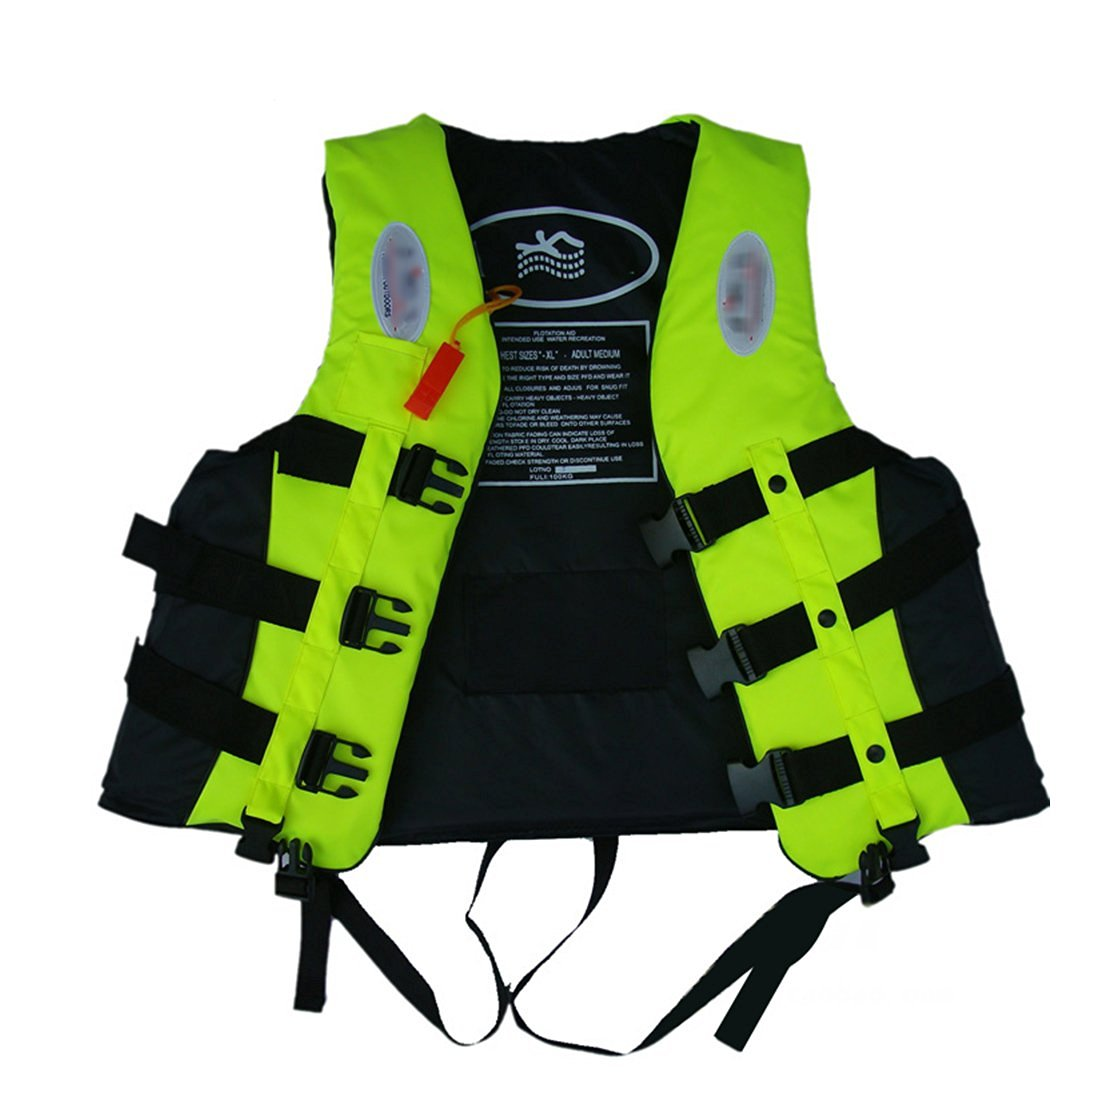 BAITER Leader Internation Life Vest with Whistle, Buoyancy Aid for Adult, Buoyancy Vest, Kayaking Foam Life Jacket for Watersport